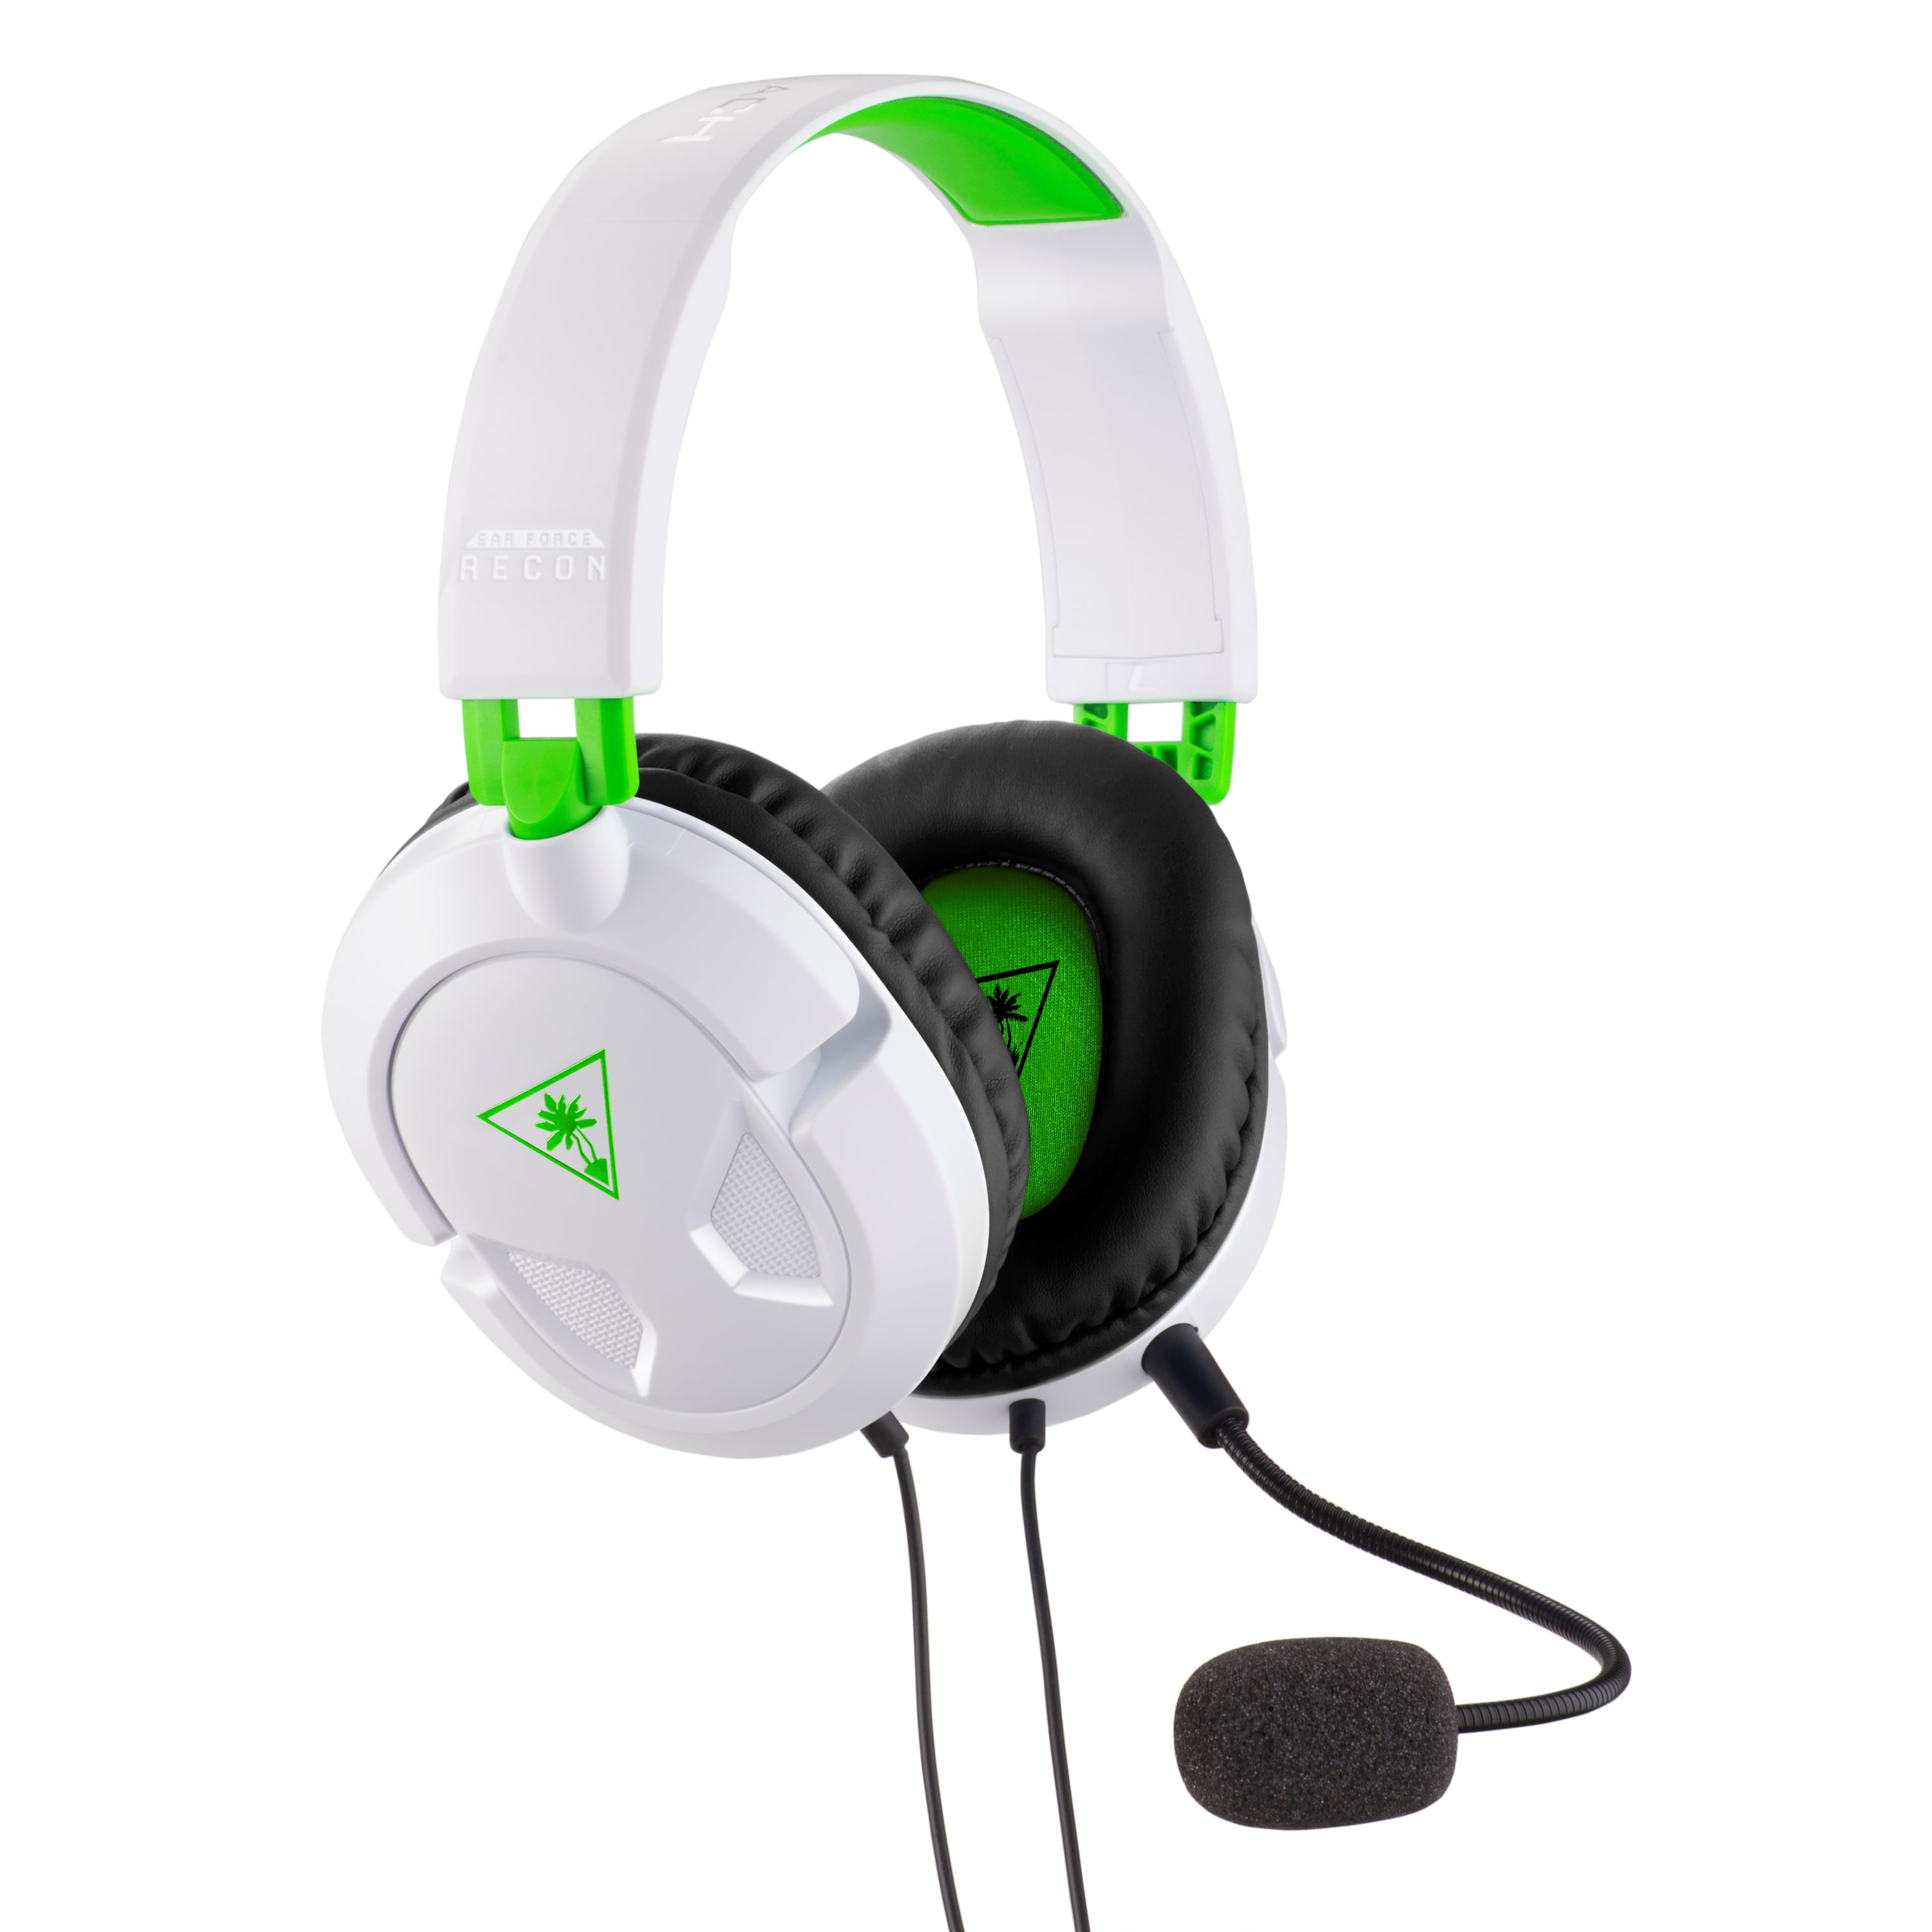 a00858f1dc8 Turtle Beach Recon 50X Gaming Headset for Xbox One, PS4, PC, Mobile (White)  - Walmart.com